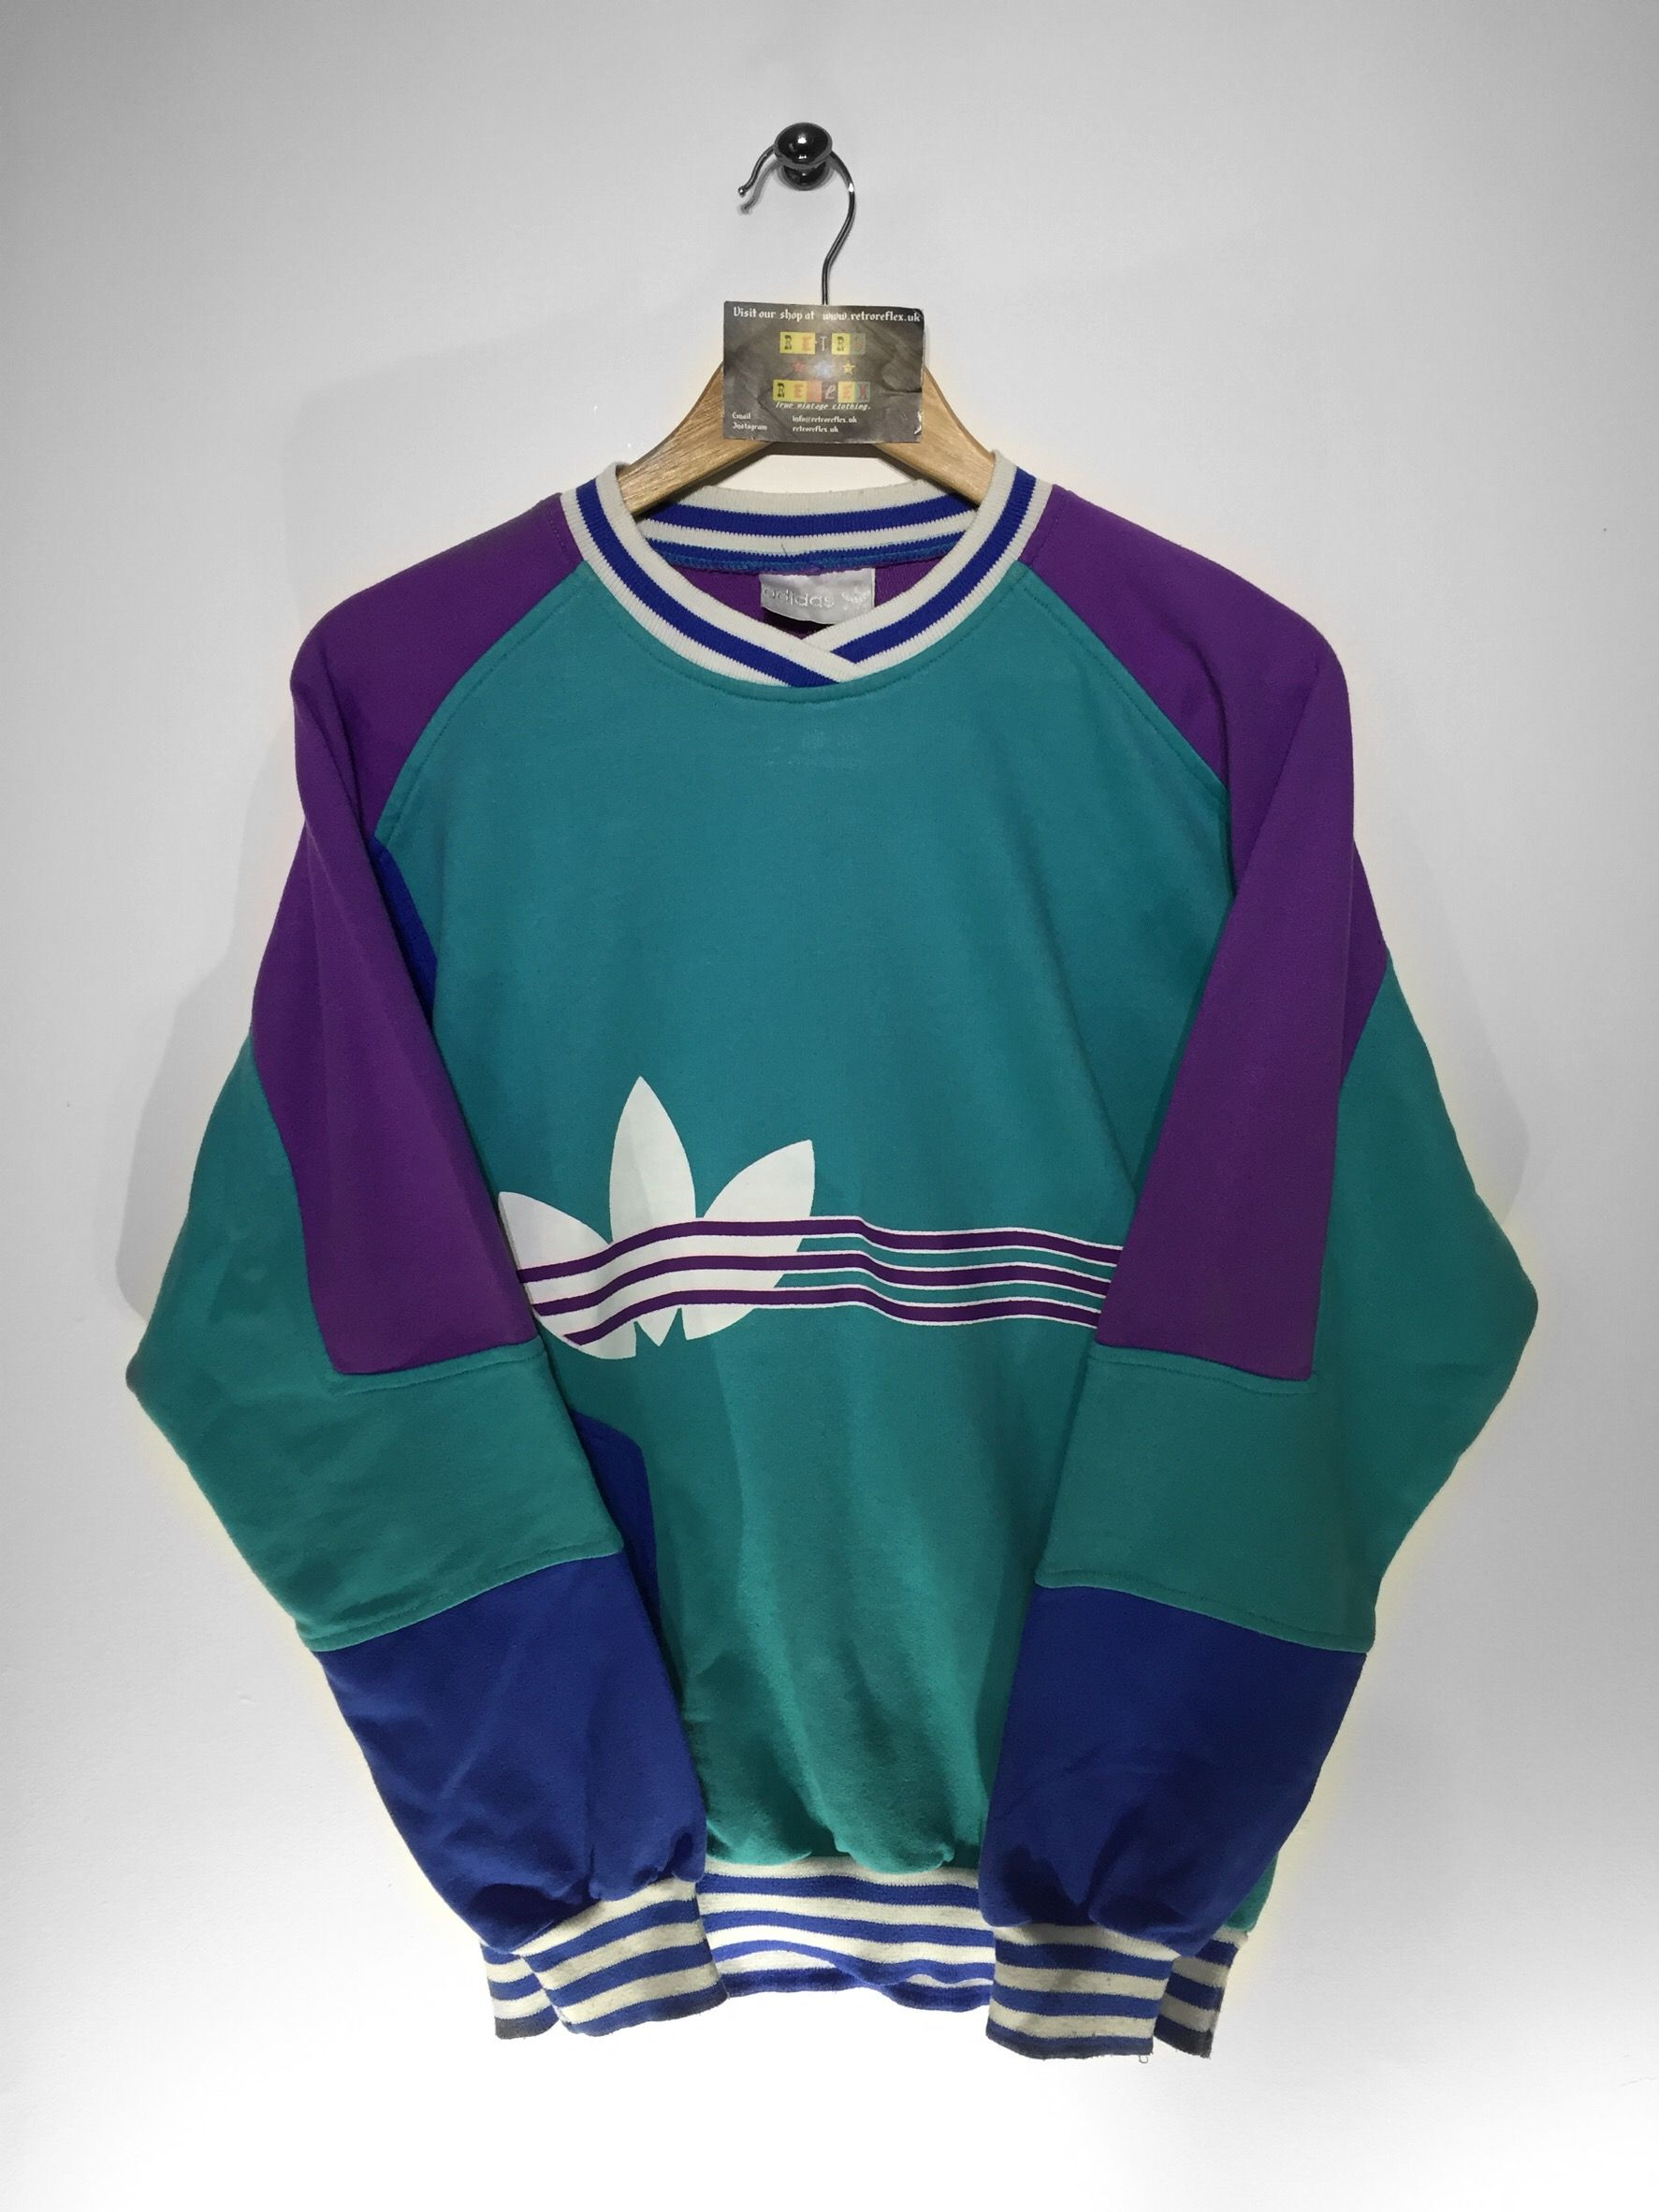 Adidas sweatshirt Size Small(but Fits Oversized) £36 Website